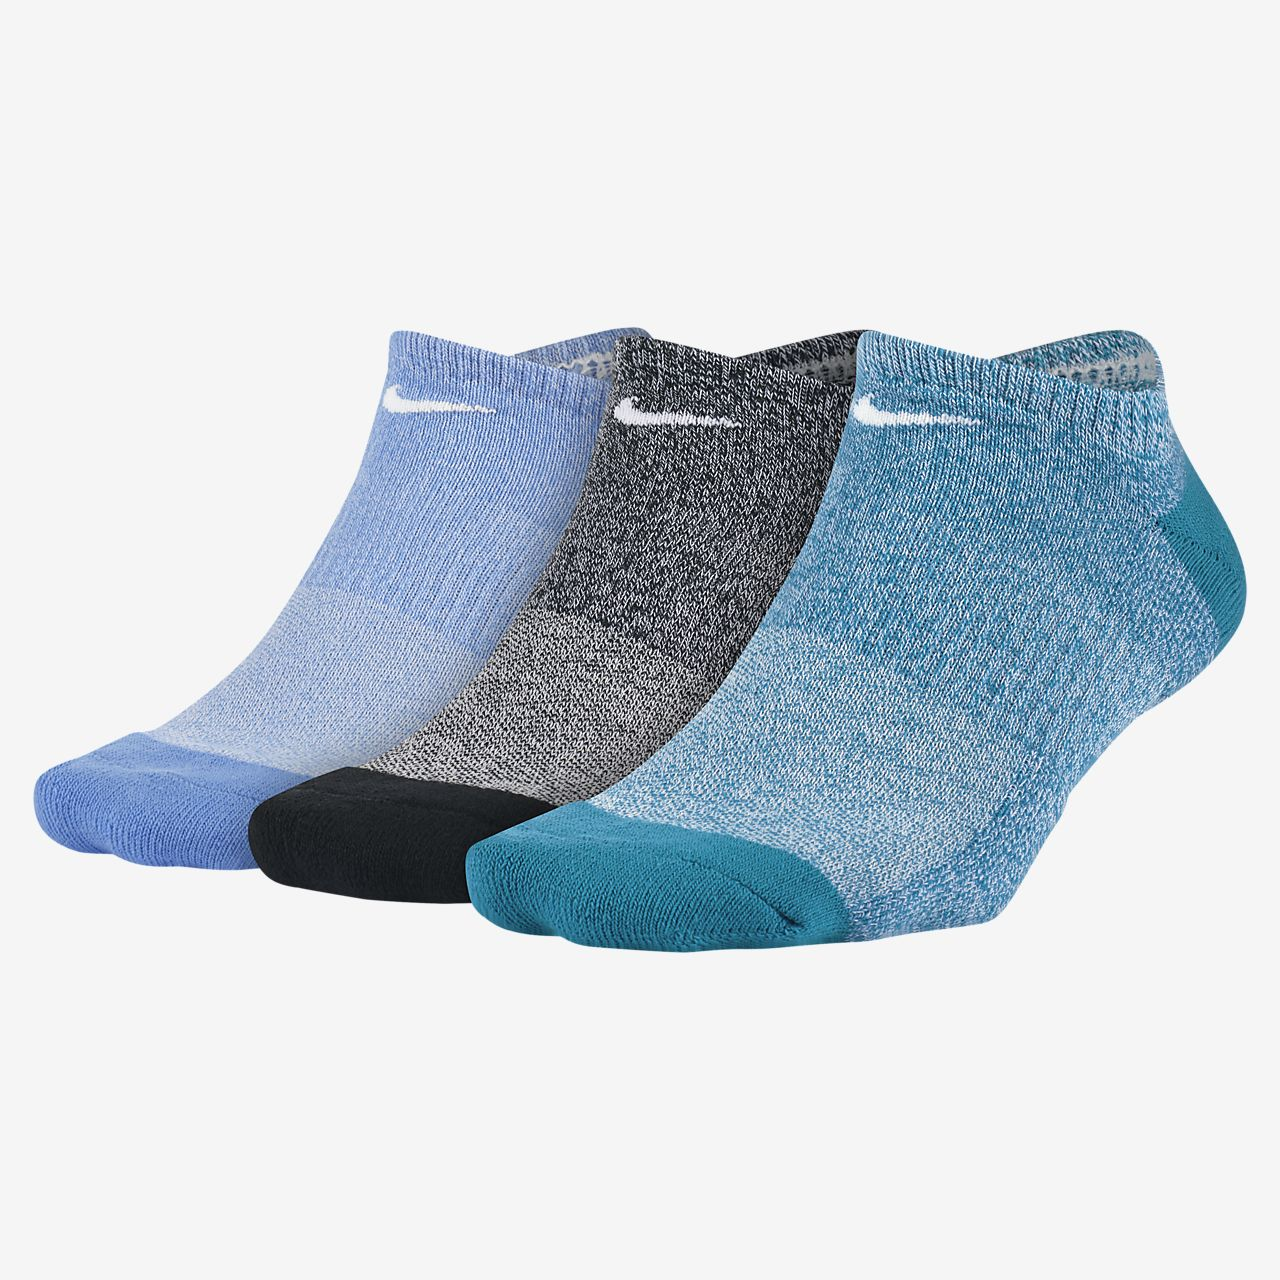 Nike Everyday Cushioned No-Show Socks (3 Pair)